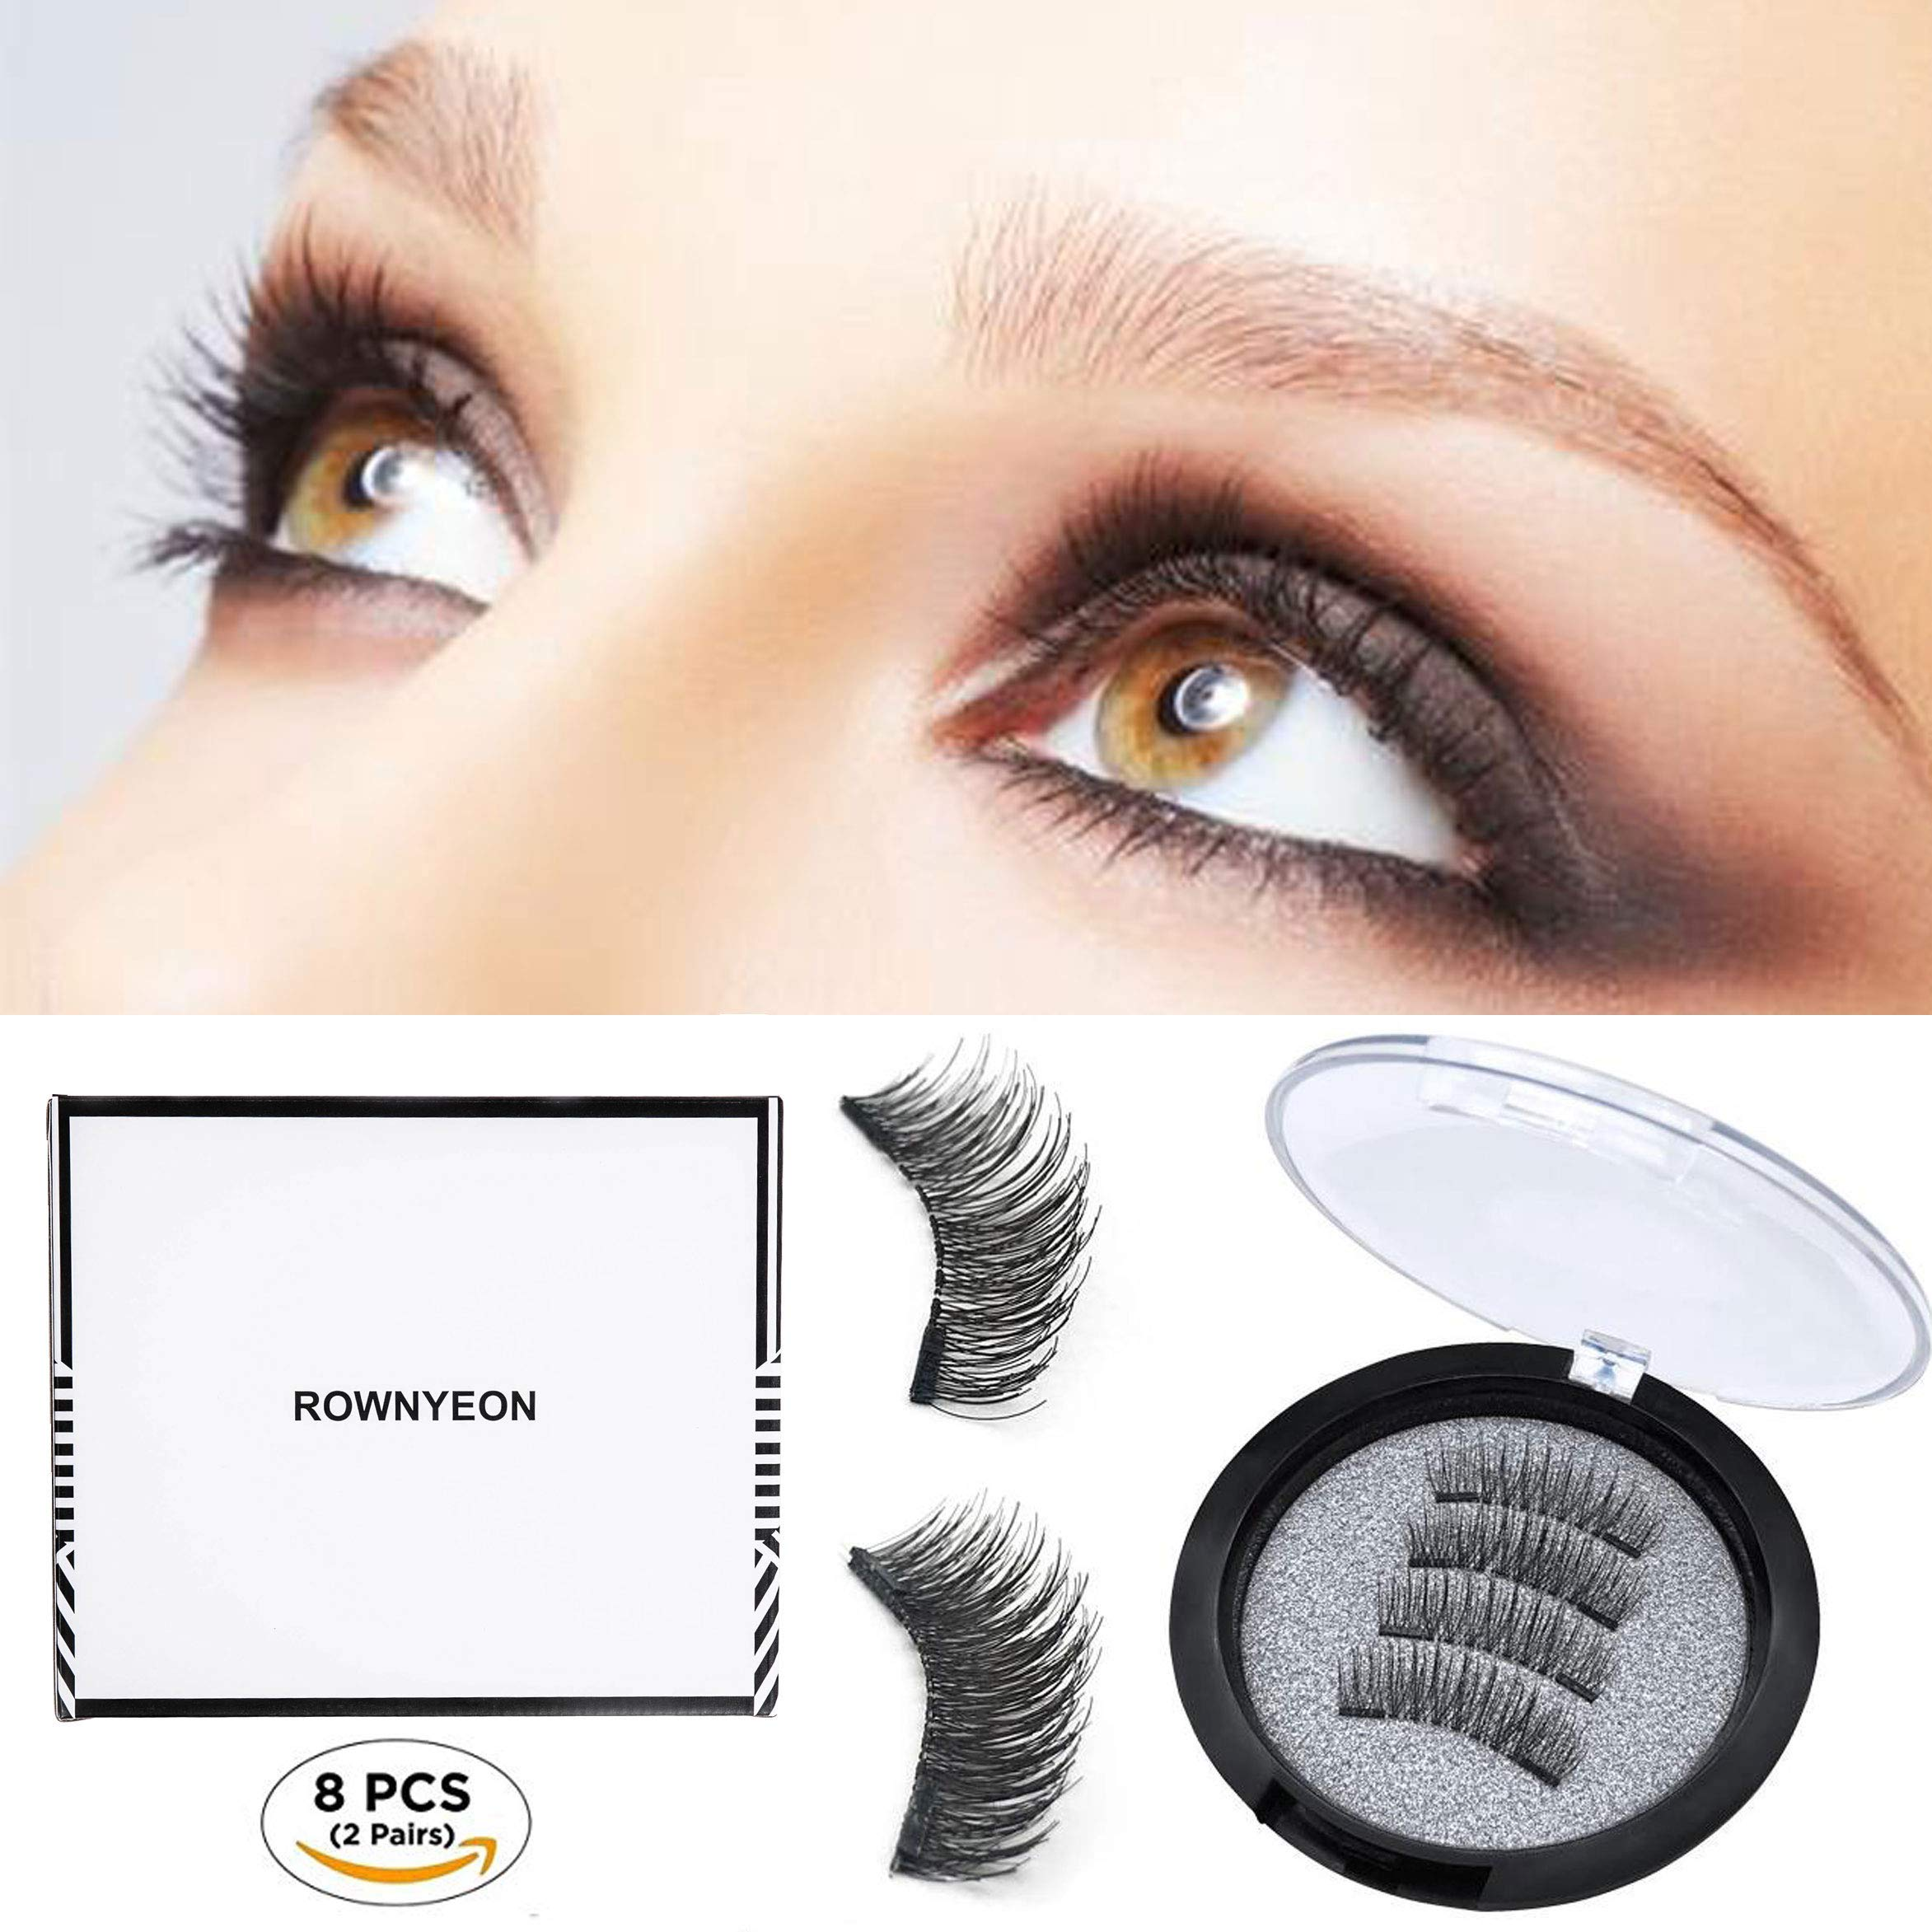 f16c4cae41c ROWNYEON Magnetic Eyelashes Dual Magnetic False Eyelashes - Ultra Thin 3D  Fiber Reusable Best Fake Lashes Extension for Natural, Perfect for Round  Eyes ...